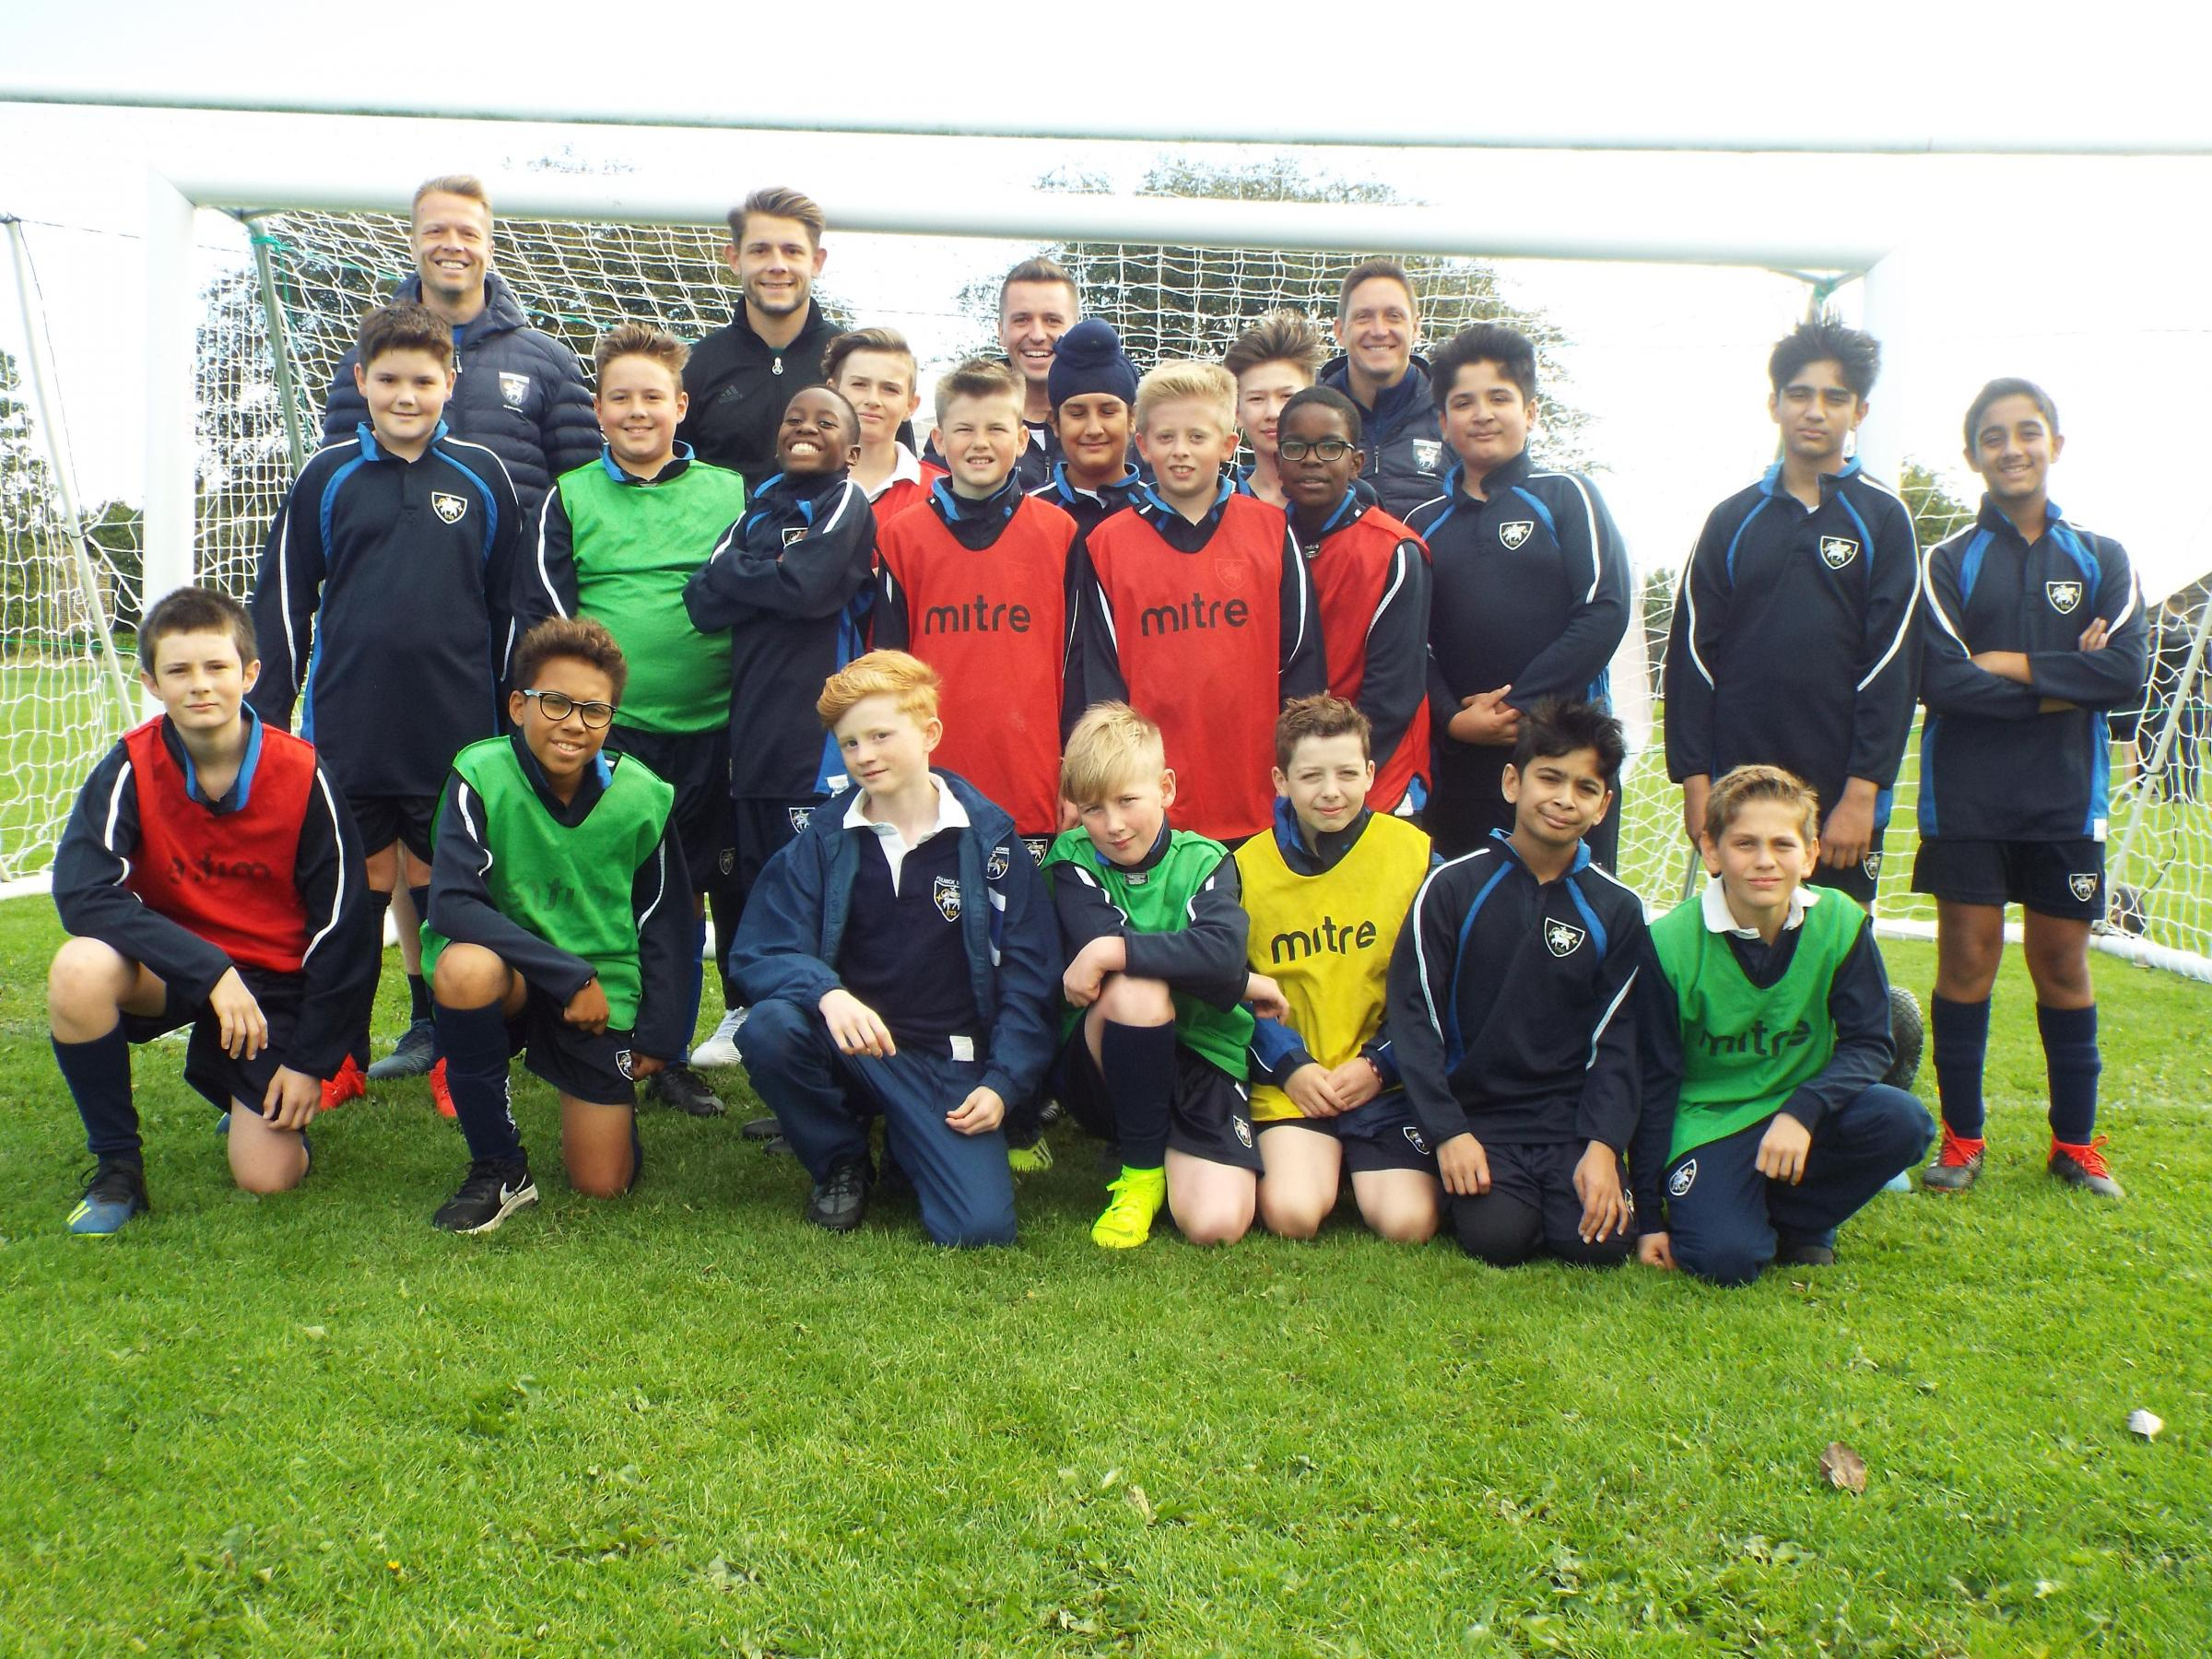 Ex-Bantam Nathan Clarke to lead football programme at Fulneck